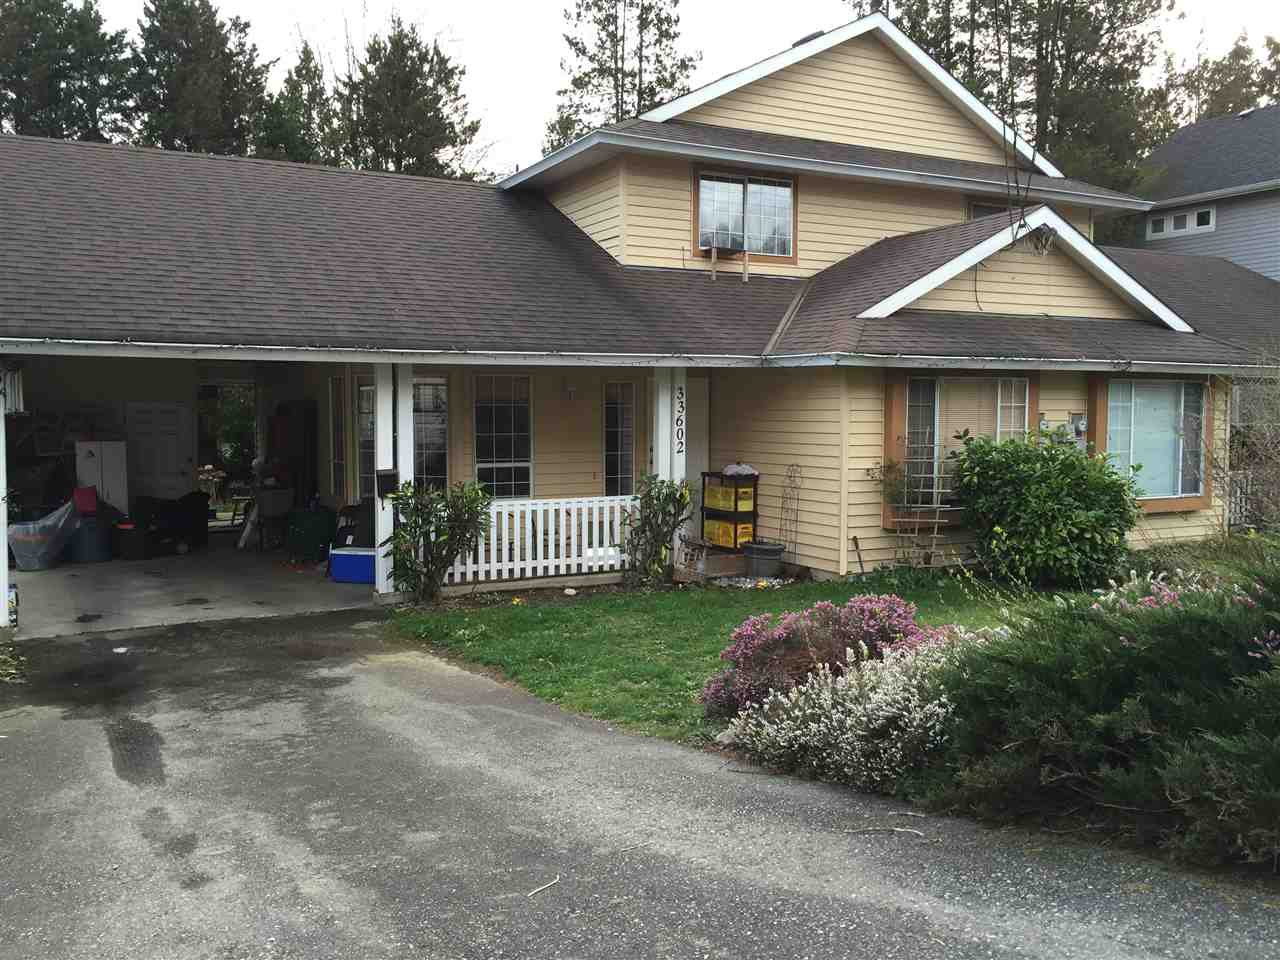 Main Photo: 33602 2 Avenue in Mission: Mission BC House 1/2 Duplex for sale : MLS®# R2042001